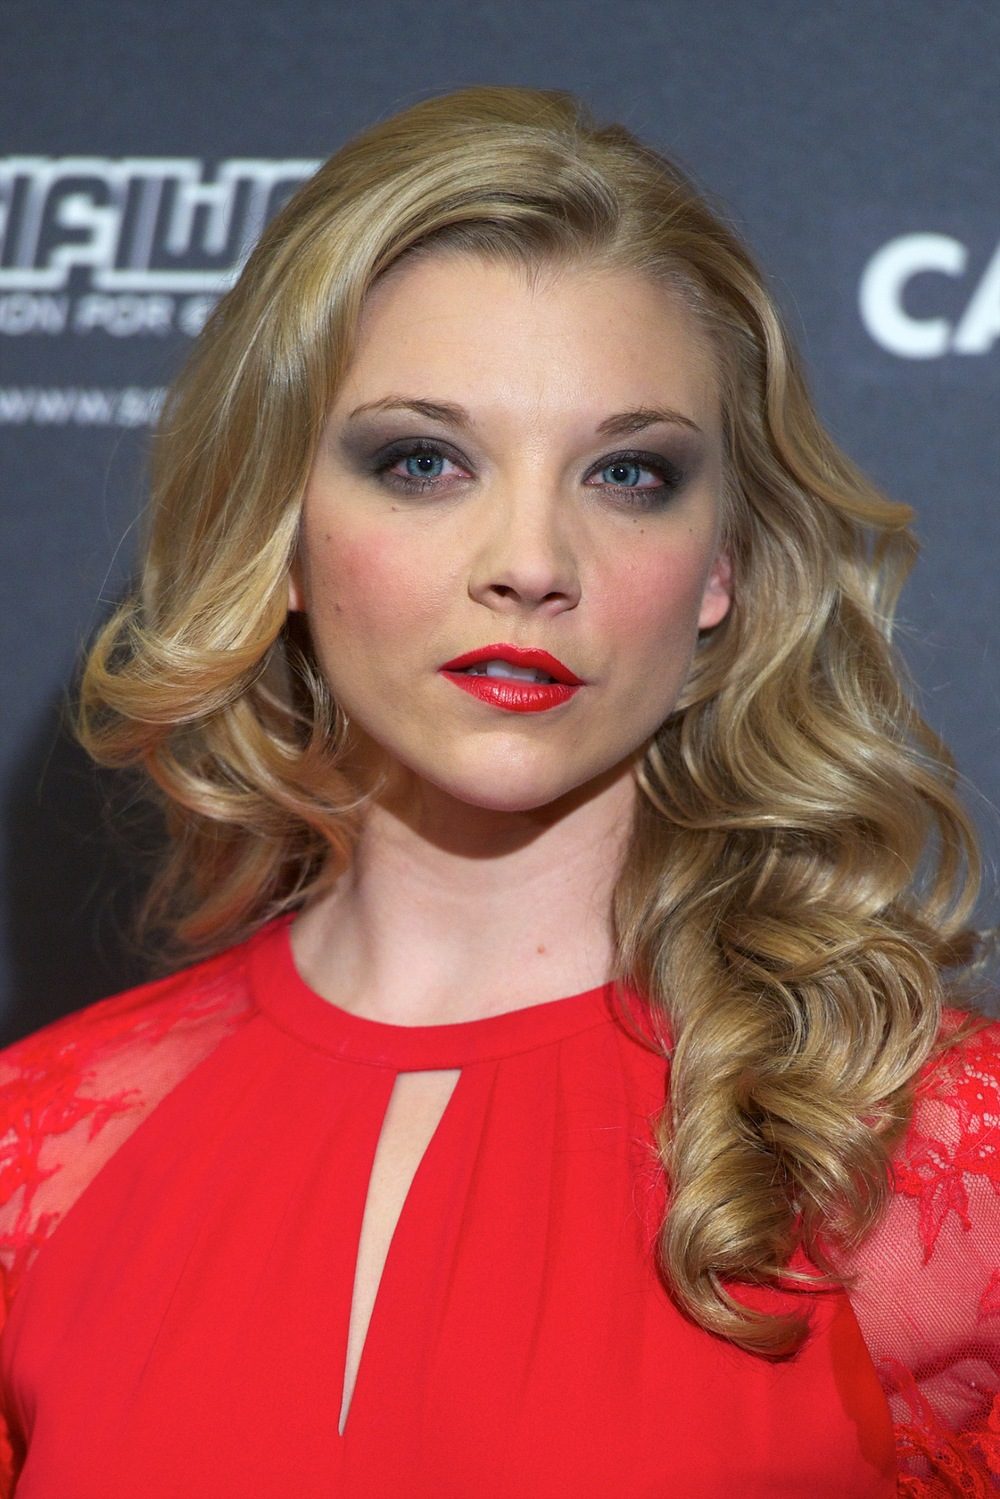 Game of Thrones Season 4: Natalie Dormer Spills Major Secrets… Kinda